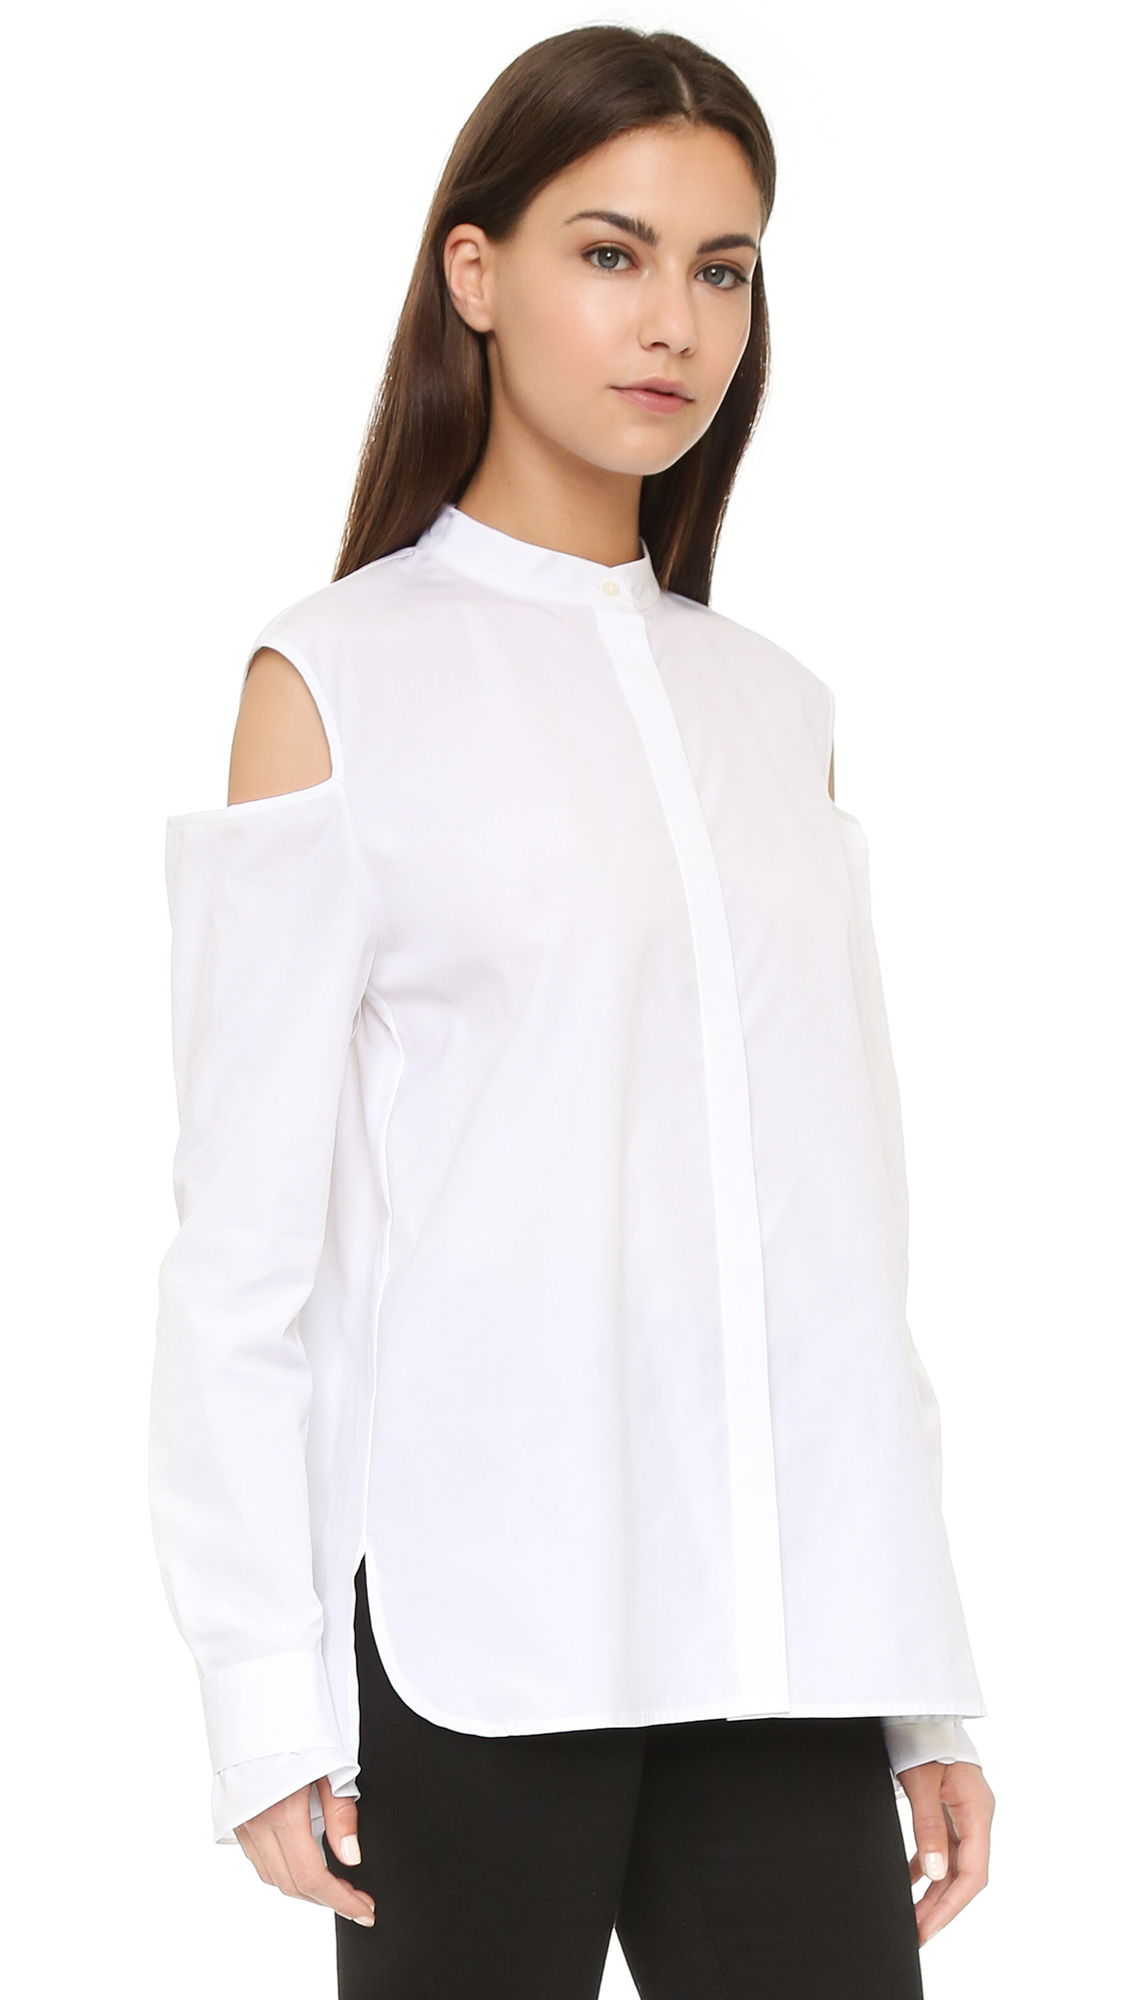 Thakoon Open Shoulder Shirt - White in White | Lyst